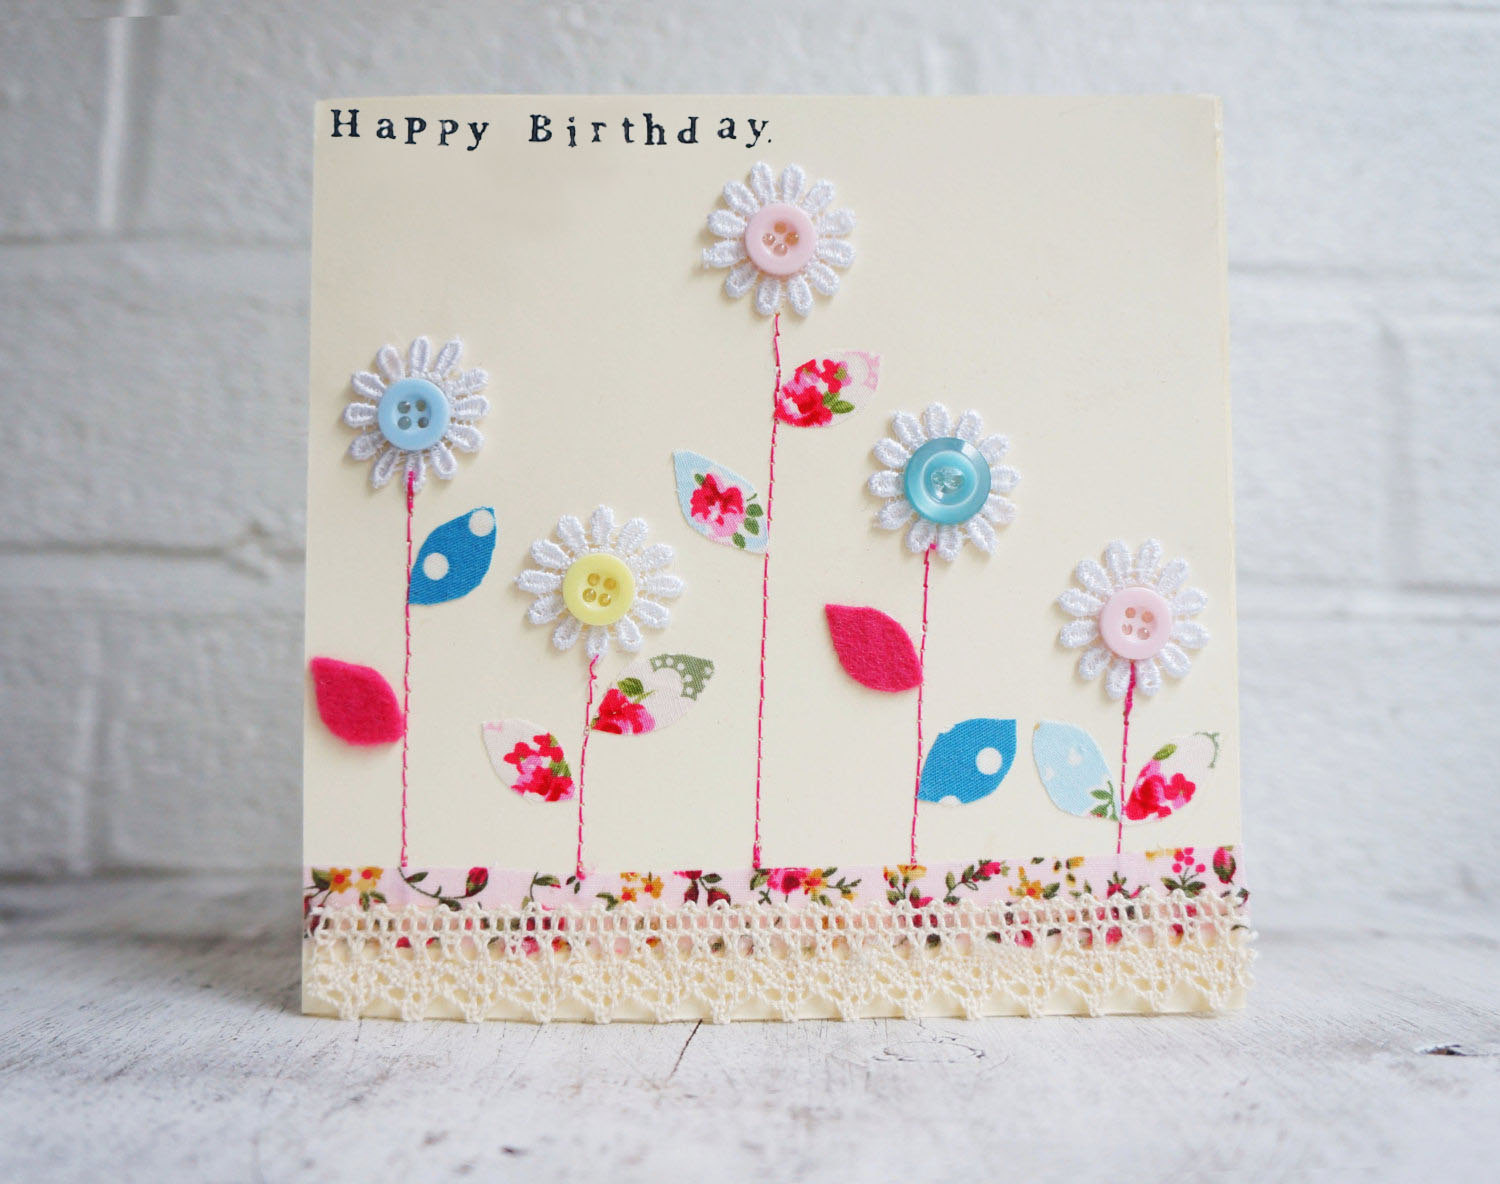 The Collection of Impressive and Beautiful Birthday Cards to Send Your Wishes to Father 3